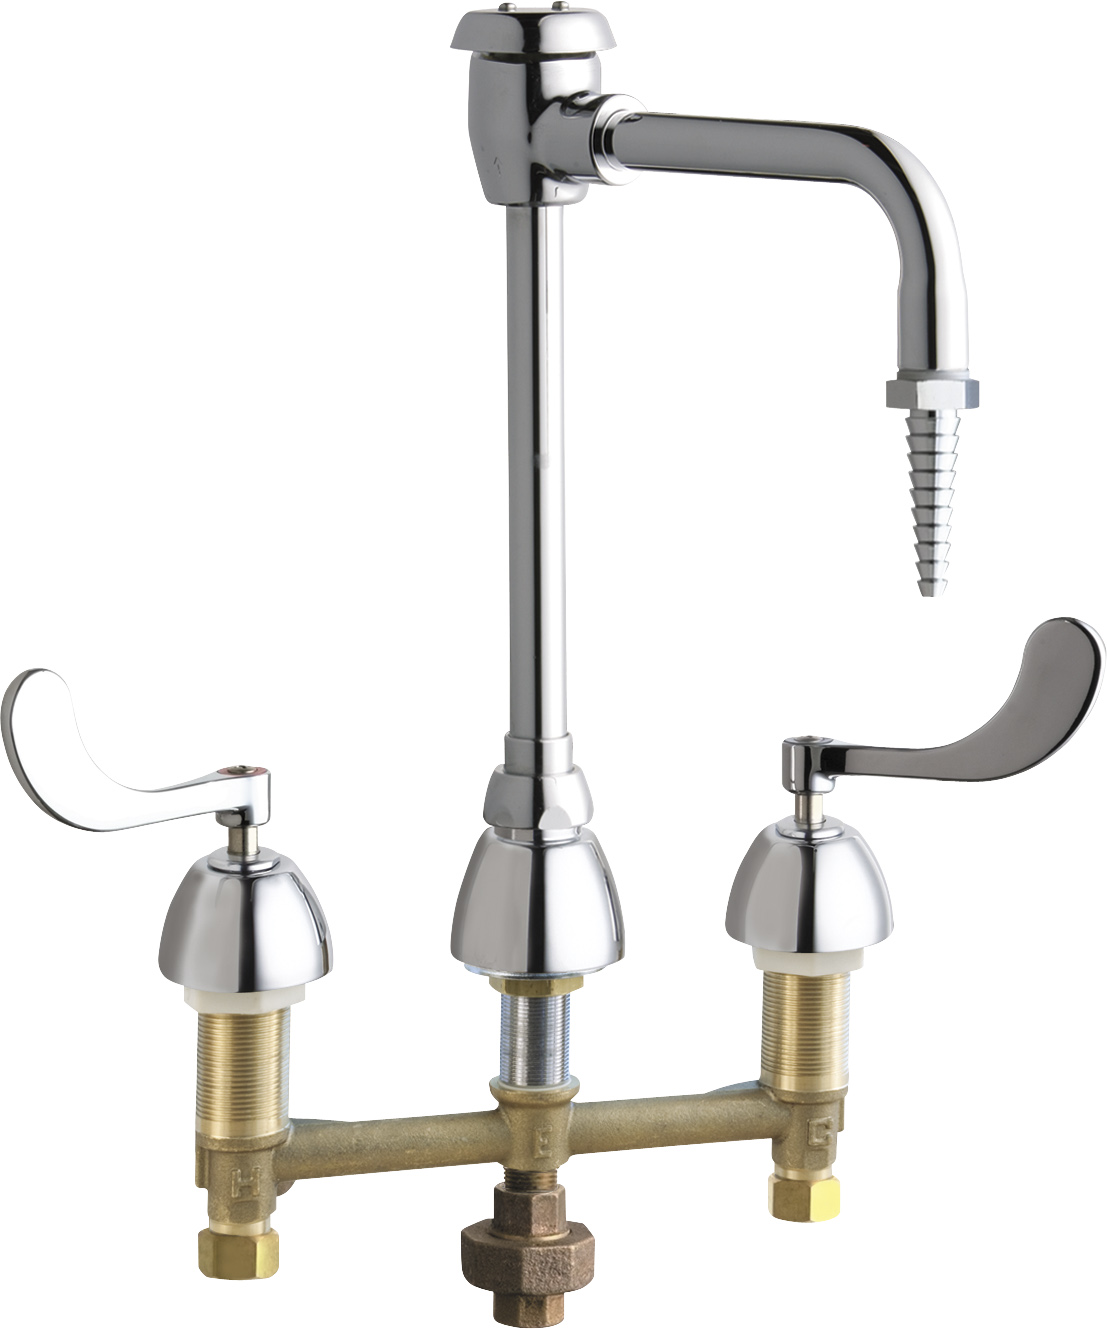 Deck Mounted Manual Sink Faucet With 8 Quot Or Adjustable